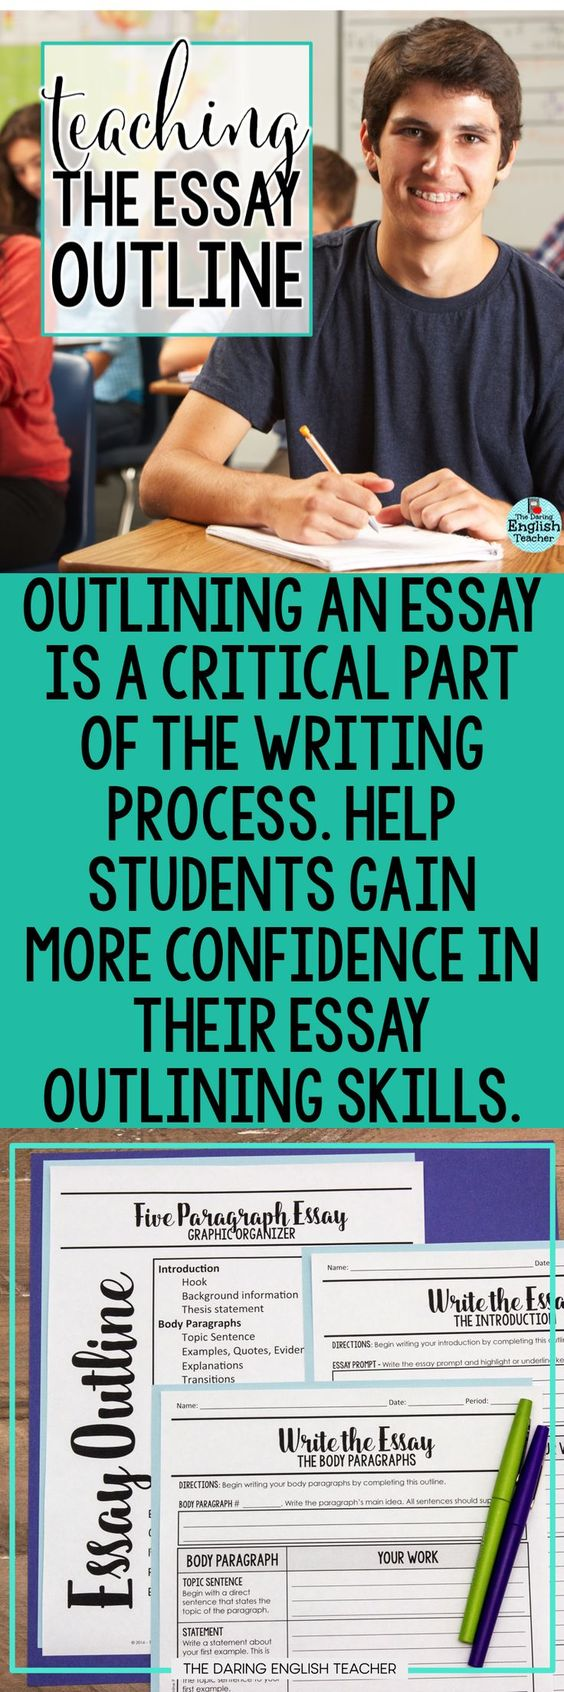 quotation letters format%0A Essay scholarships for high school students